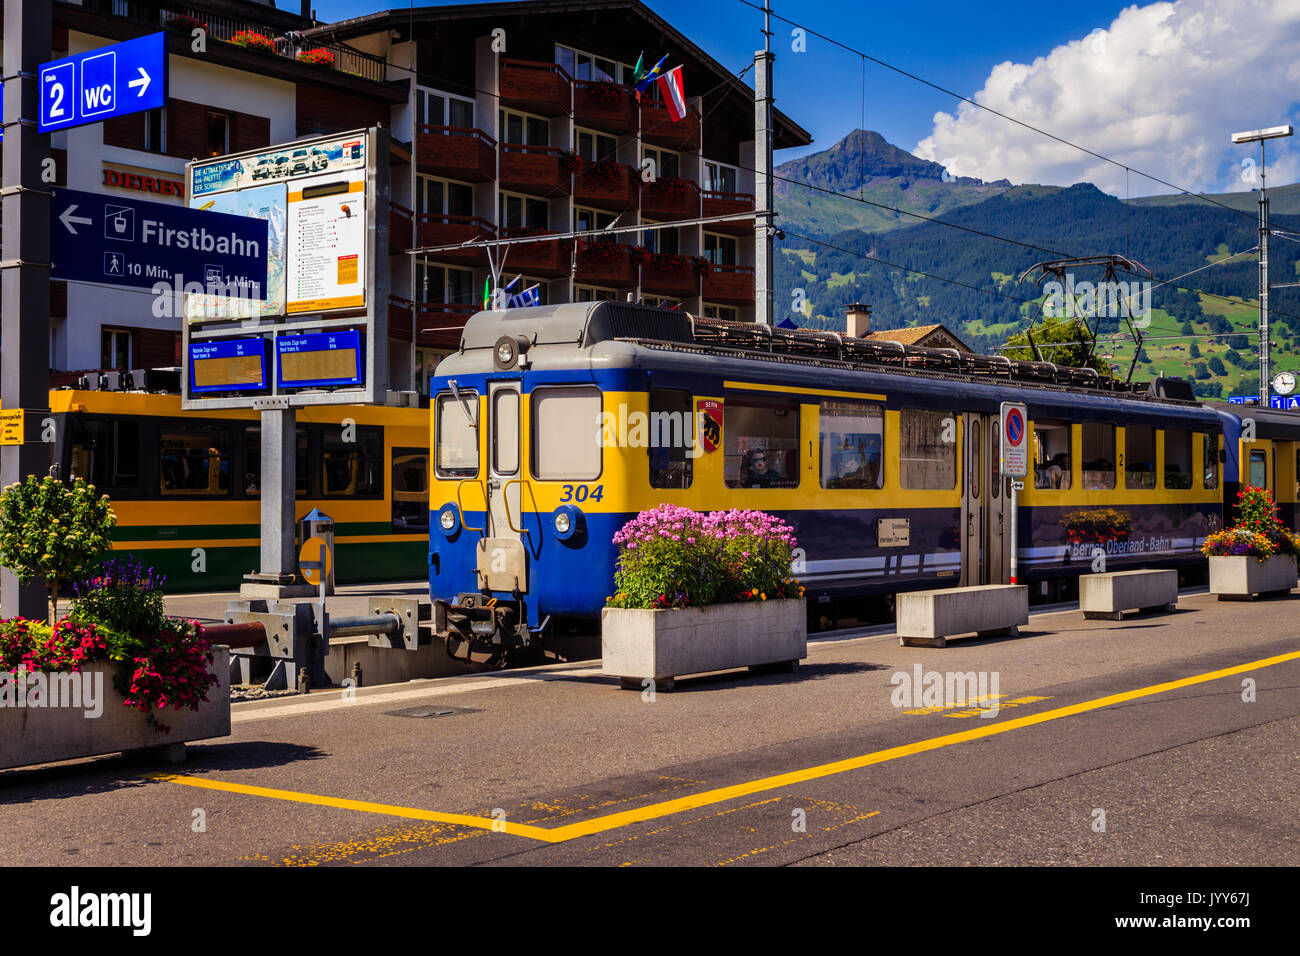 Grindelwald, Bernese Oberland, Switzerland - AUGUST 1, 2017 : Yellow - Blue train from the Berner Oberland-Bahn to Interlaken in the Grindelwald railw - Stock Image